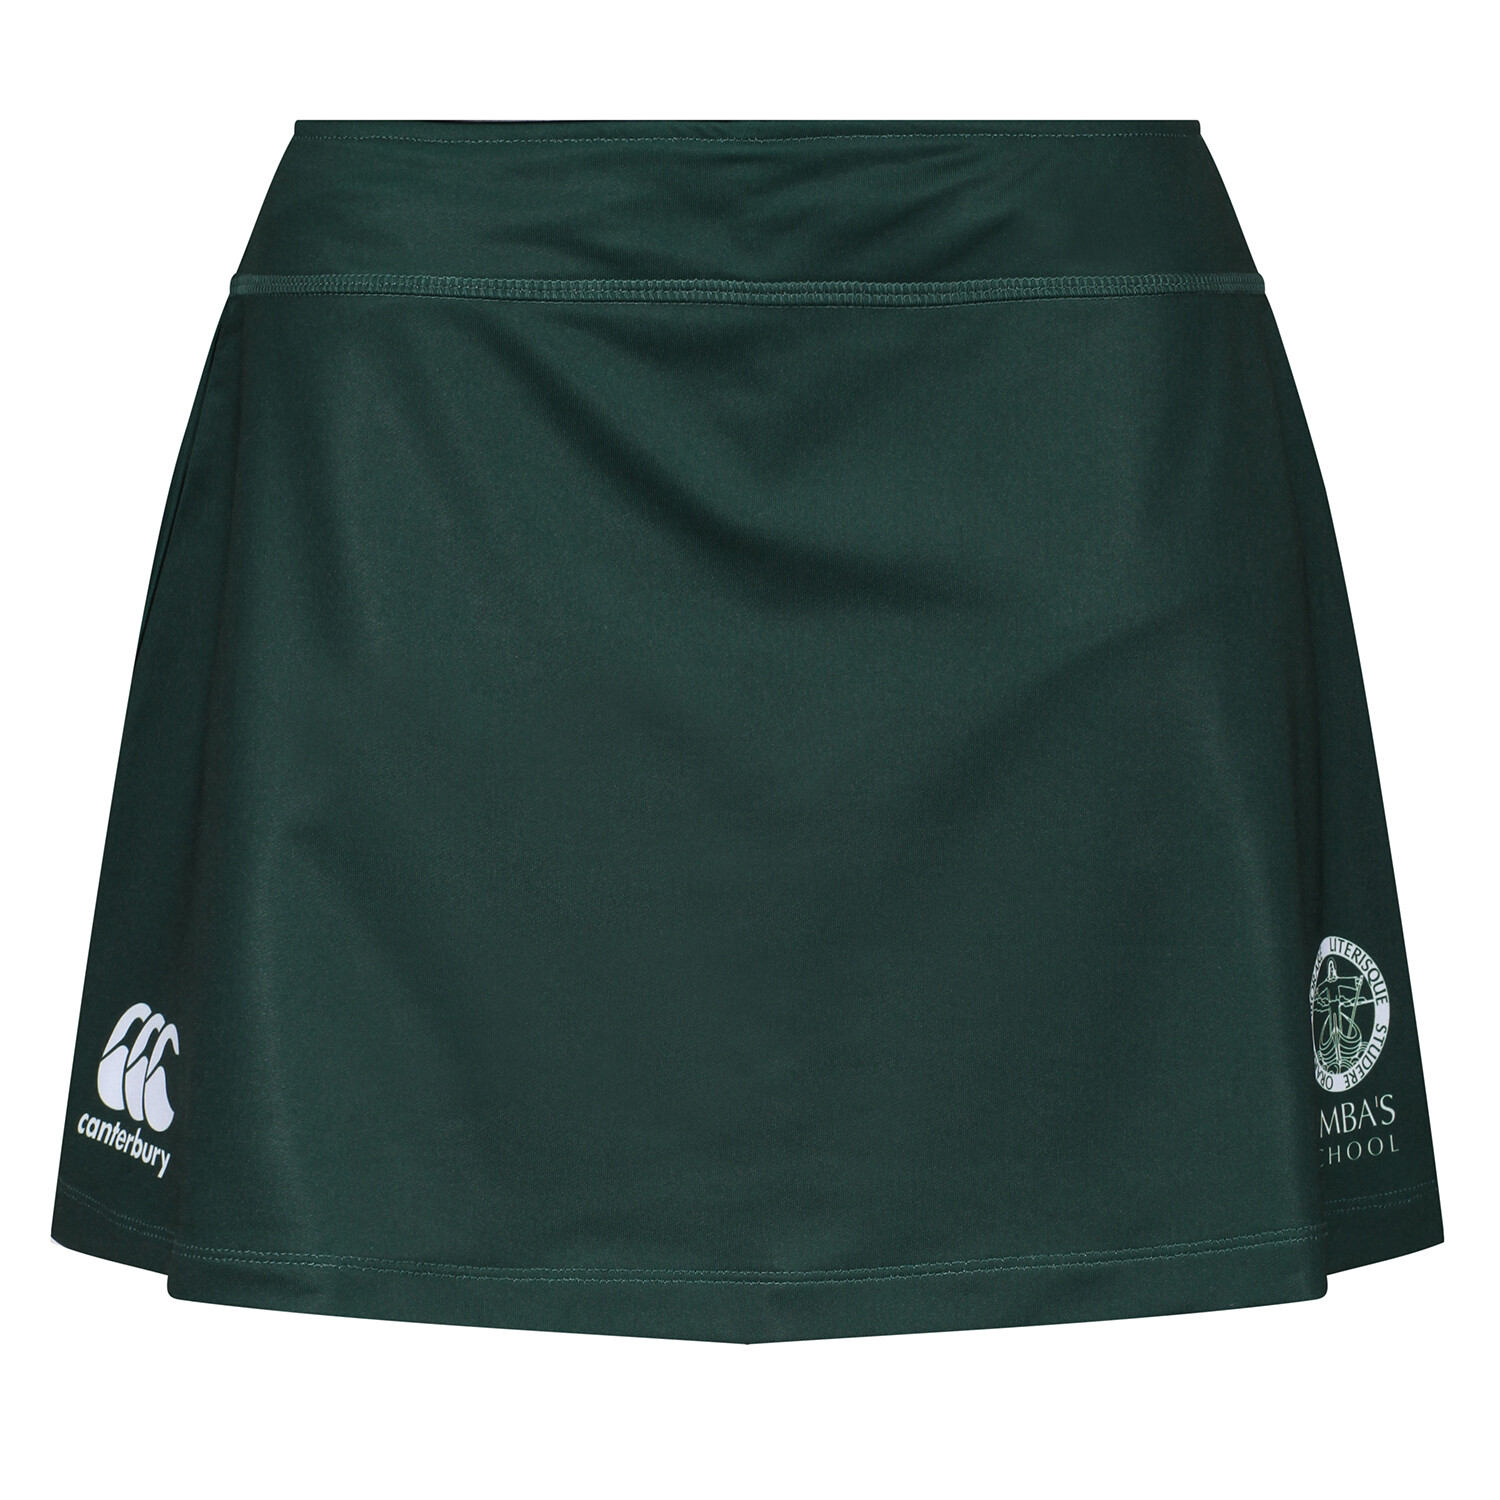 St Columba's School Girls Hockey Skort (J5-S6)